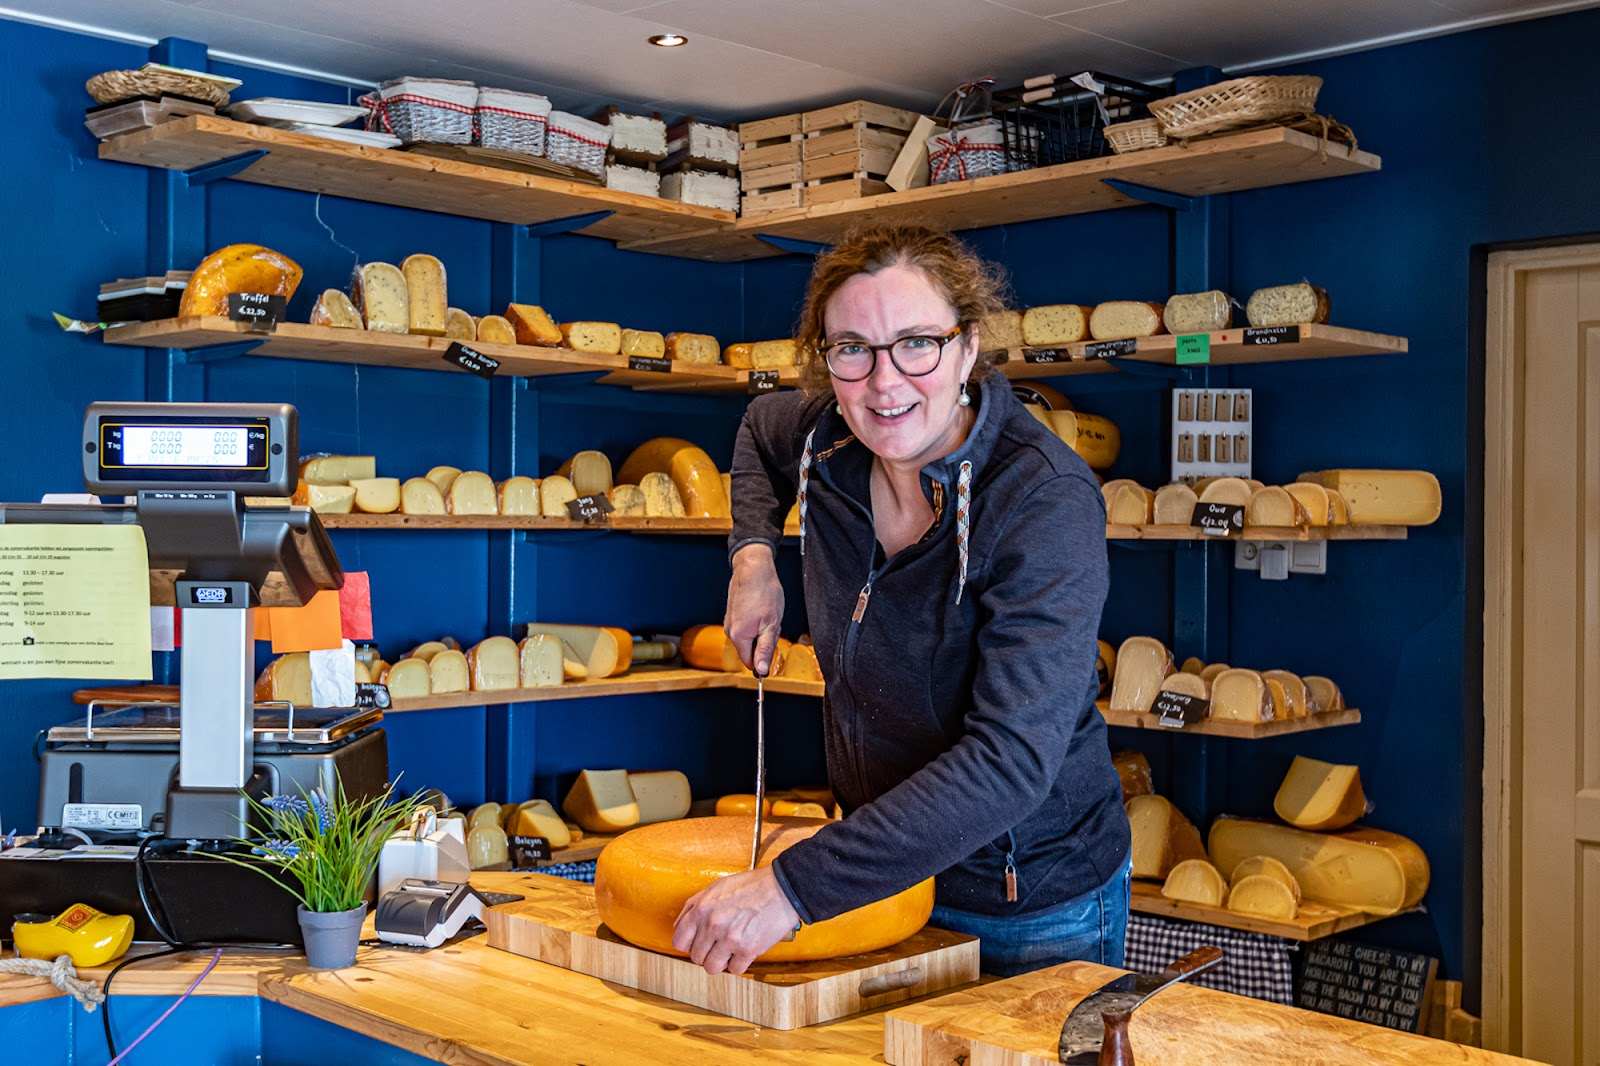 benefits of sharing economy Campspace host's cheese shop